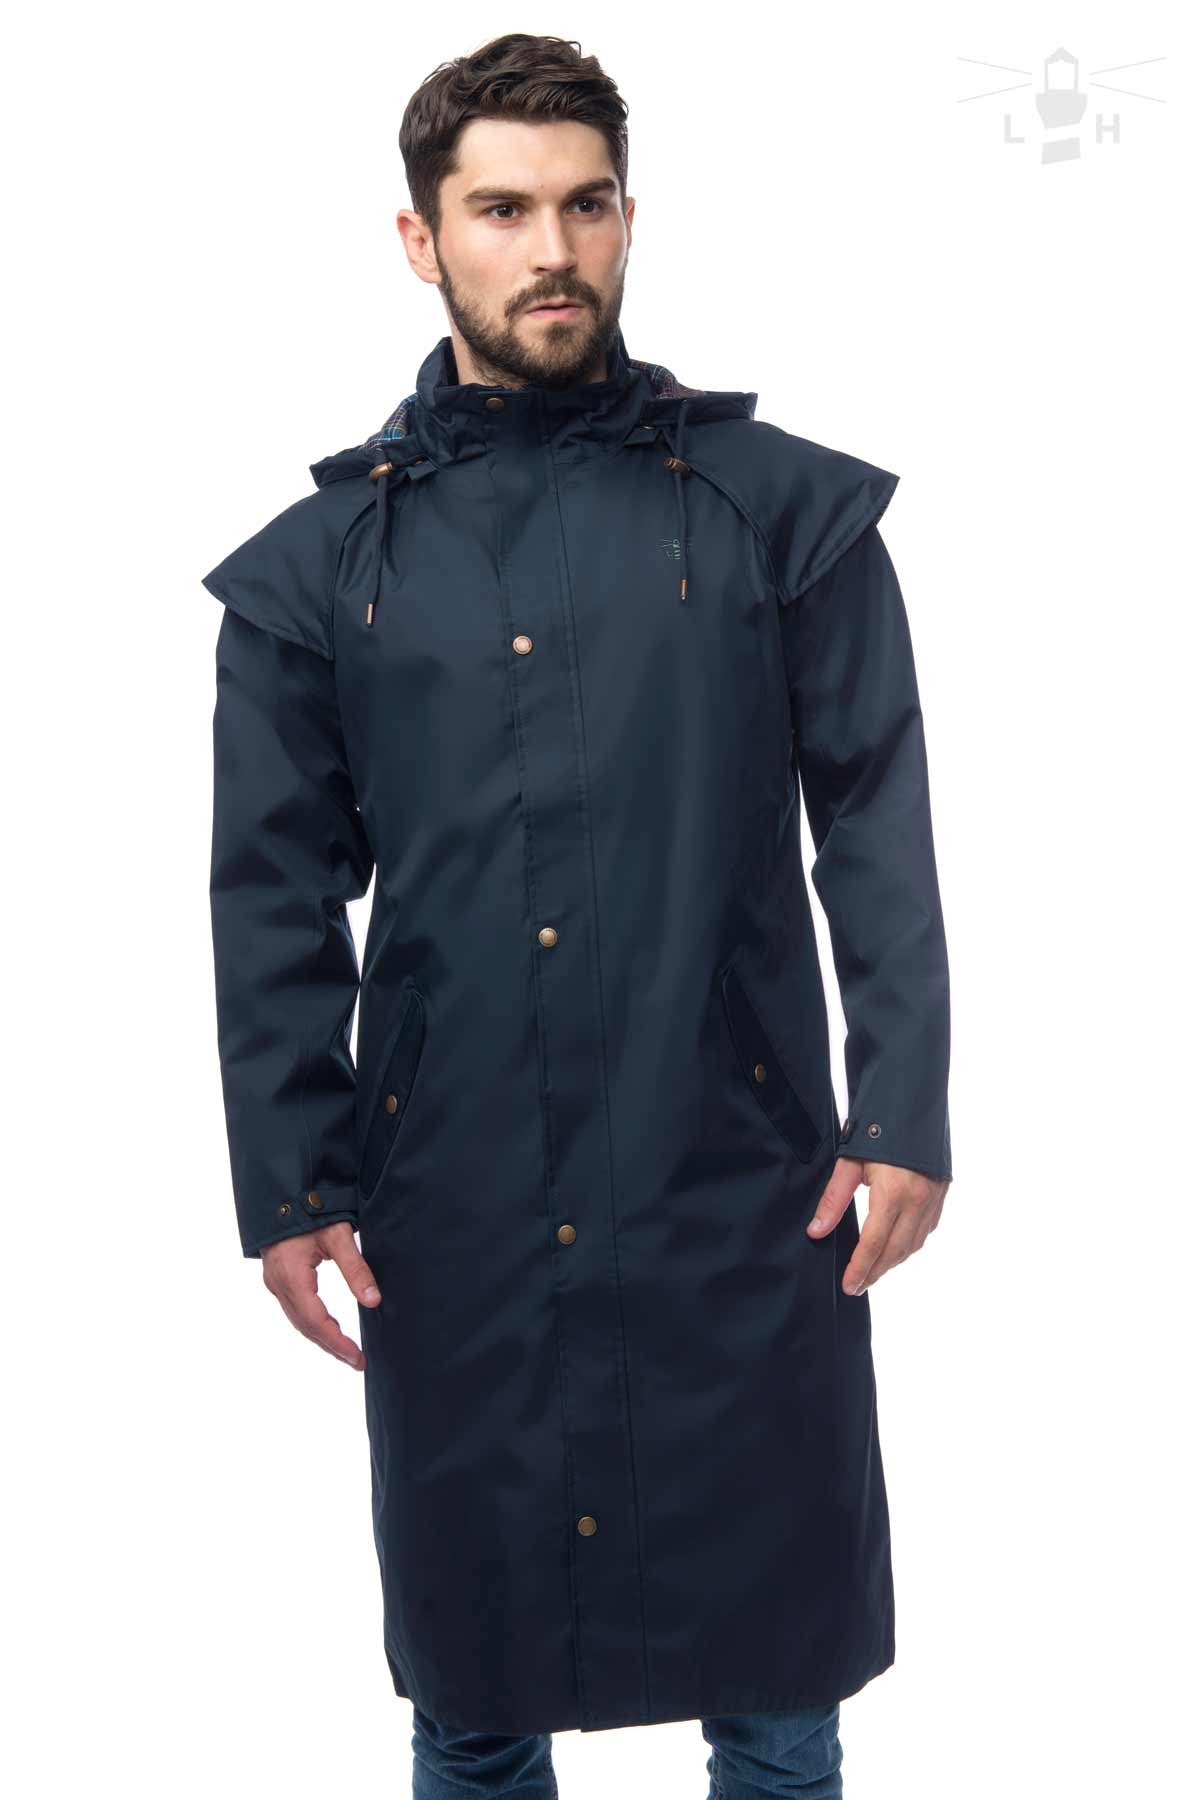 ... Lighthouse Mens Stockman Full Length Waterproof Rain Coat in Navy.  Zipped and buttoned. e2fee14177af